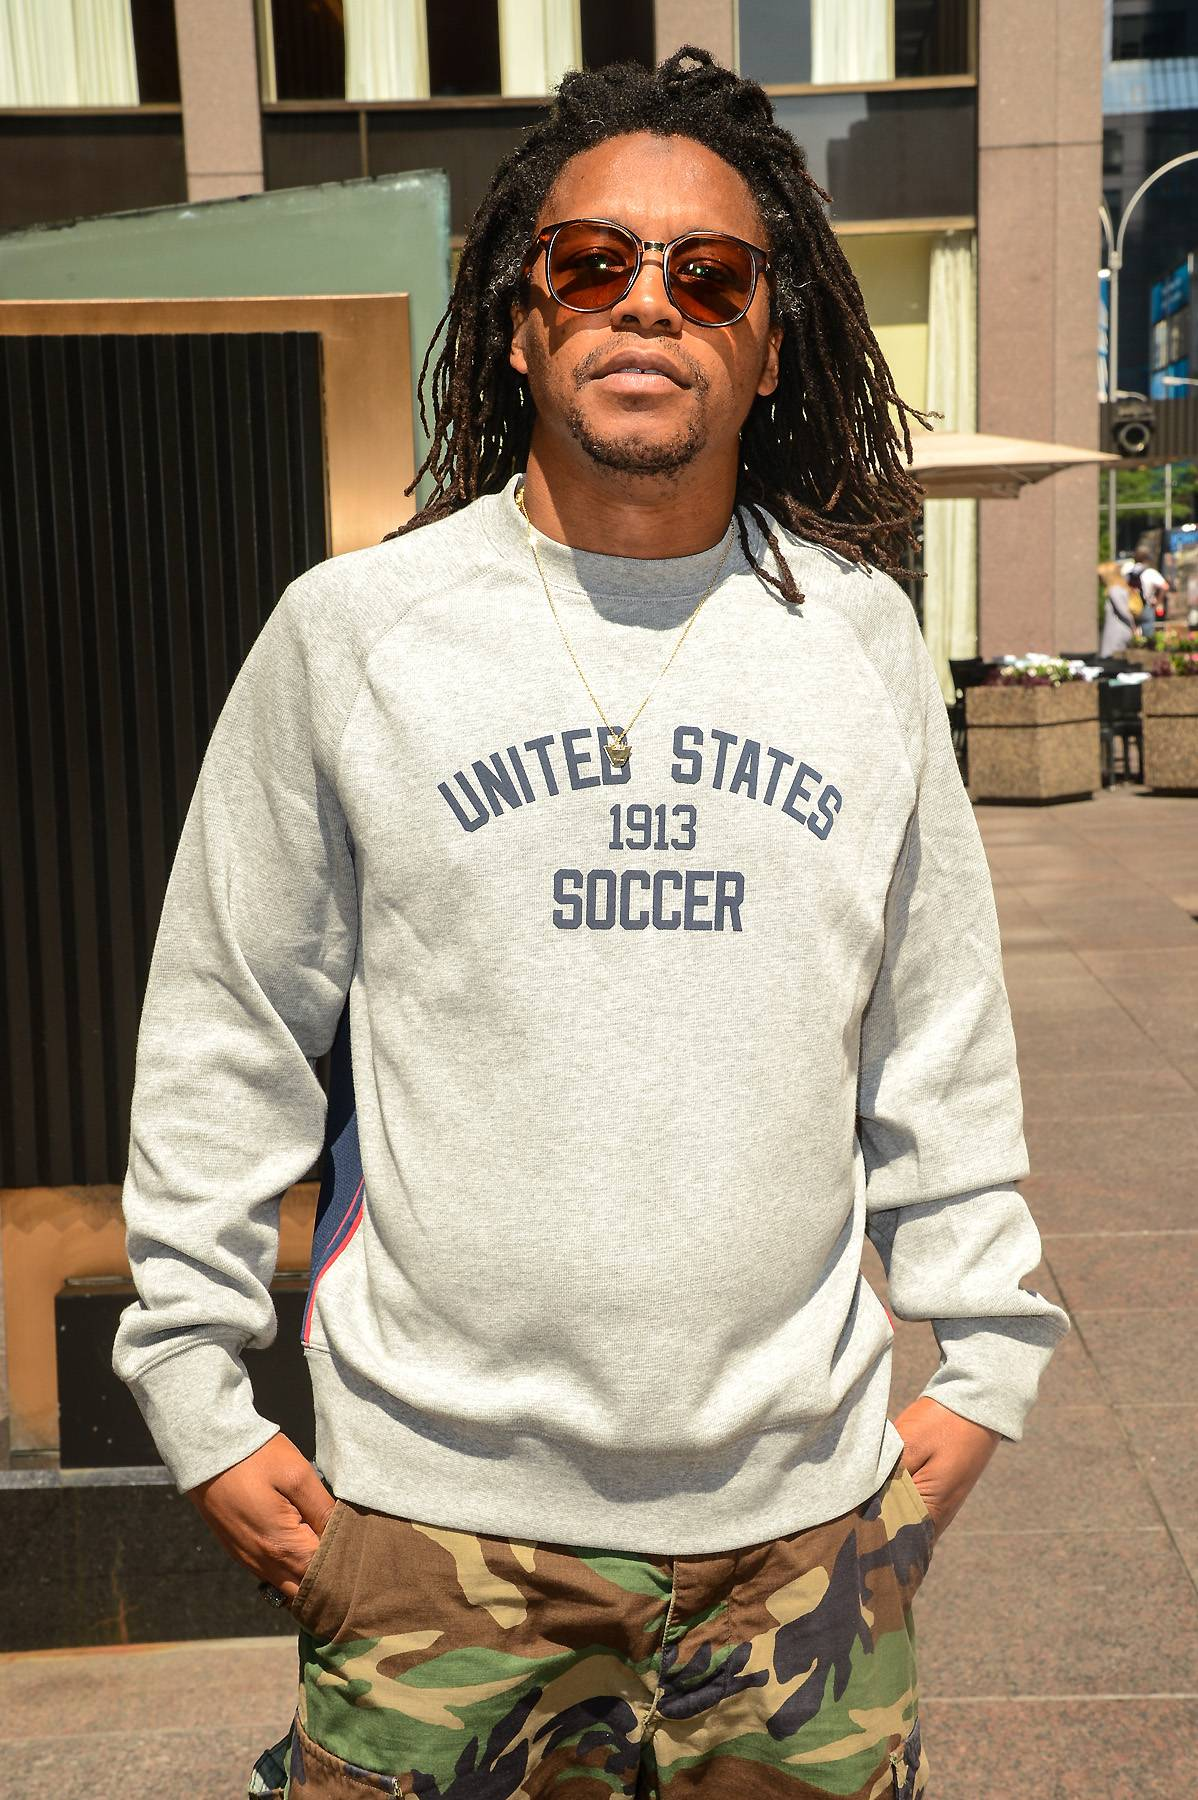 /content/dam/betcom/images/2014/07/Music-07-15-07-31/071714-music-out-Lupe-Fiasco.jpg